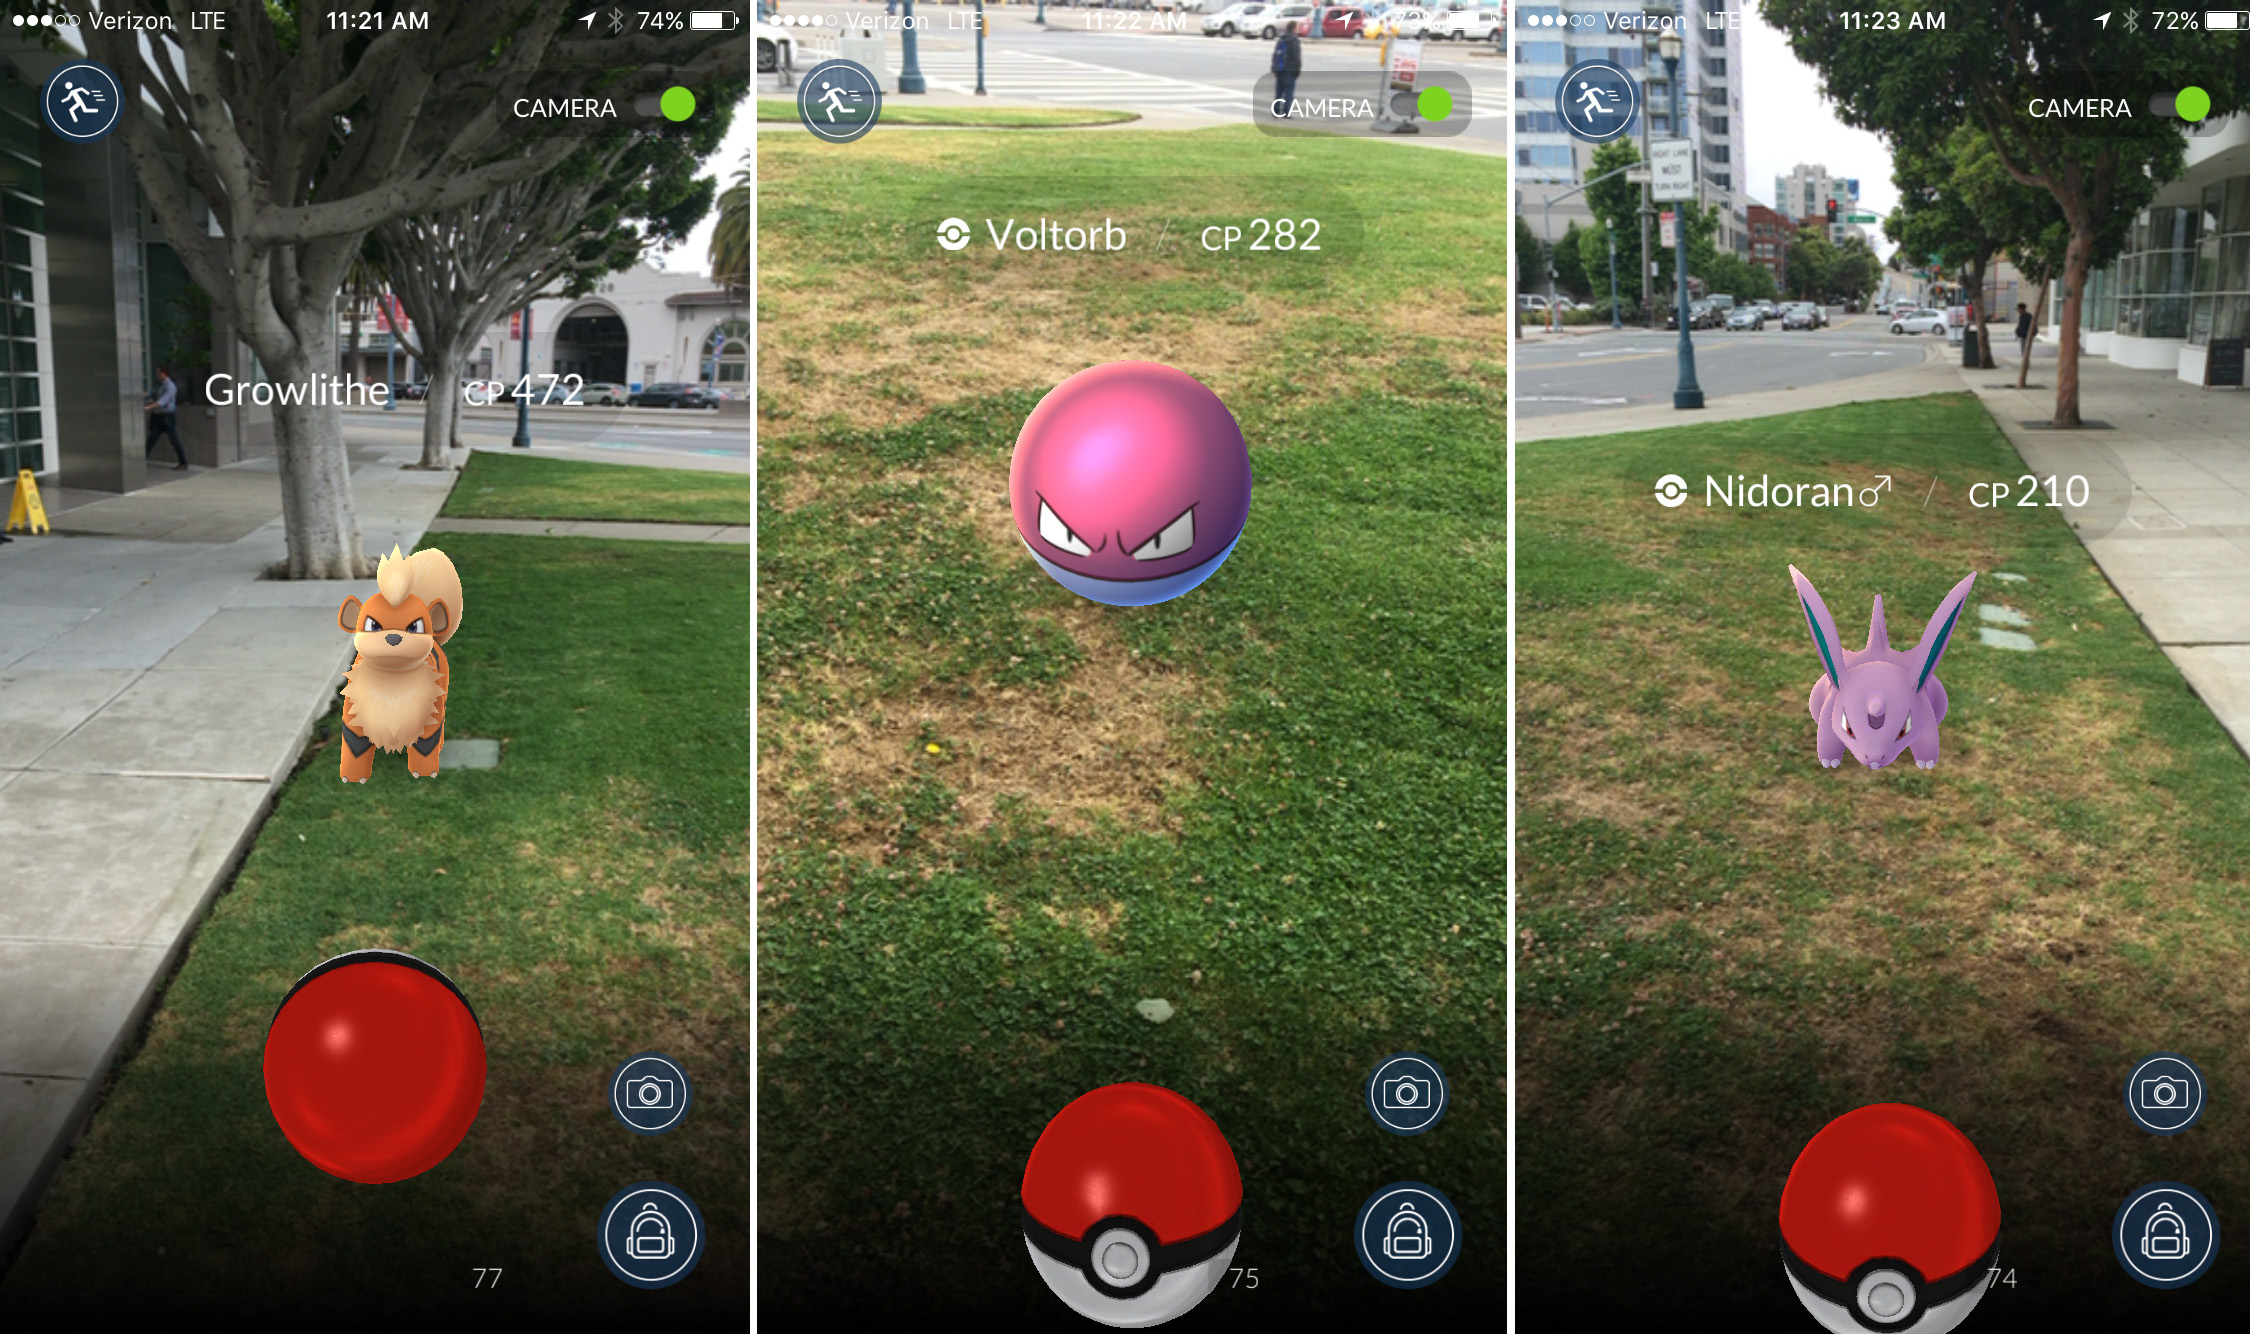 pokemon go nick statt screenshots 1.0 1 Watch The Moment A Pokemon GO Player Drives Into Cop Car